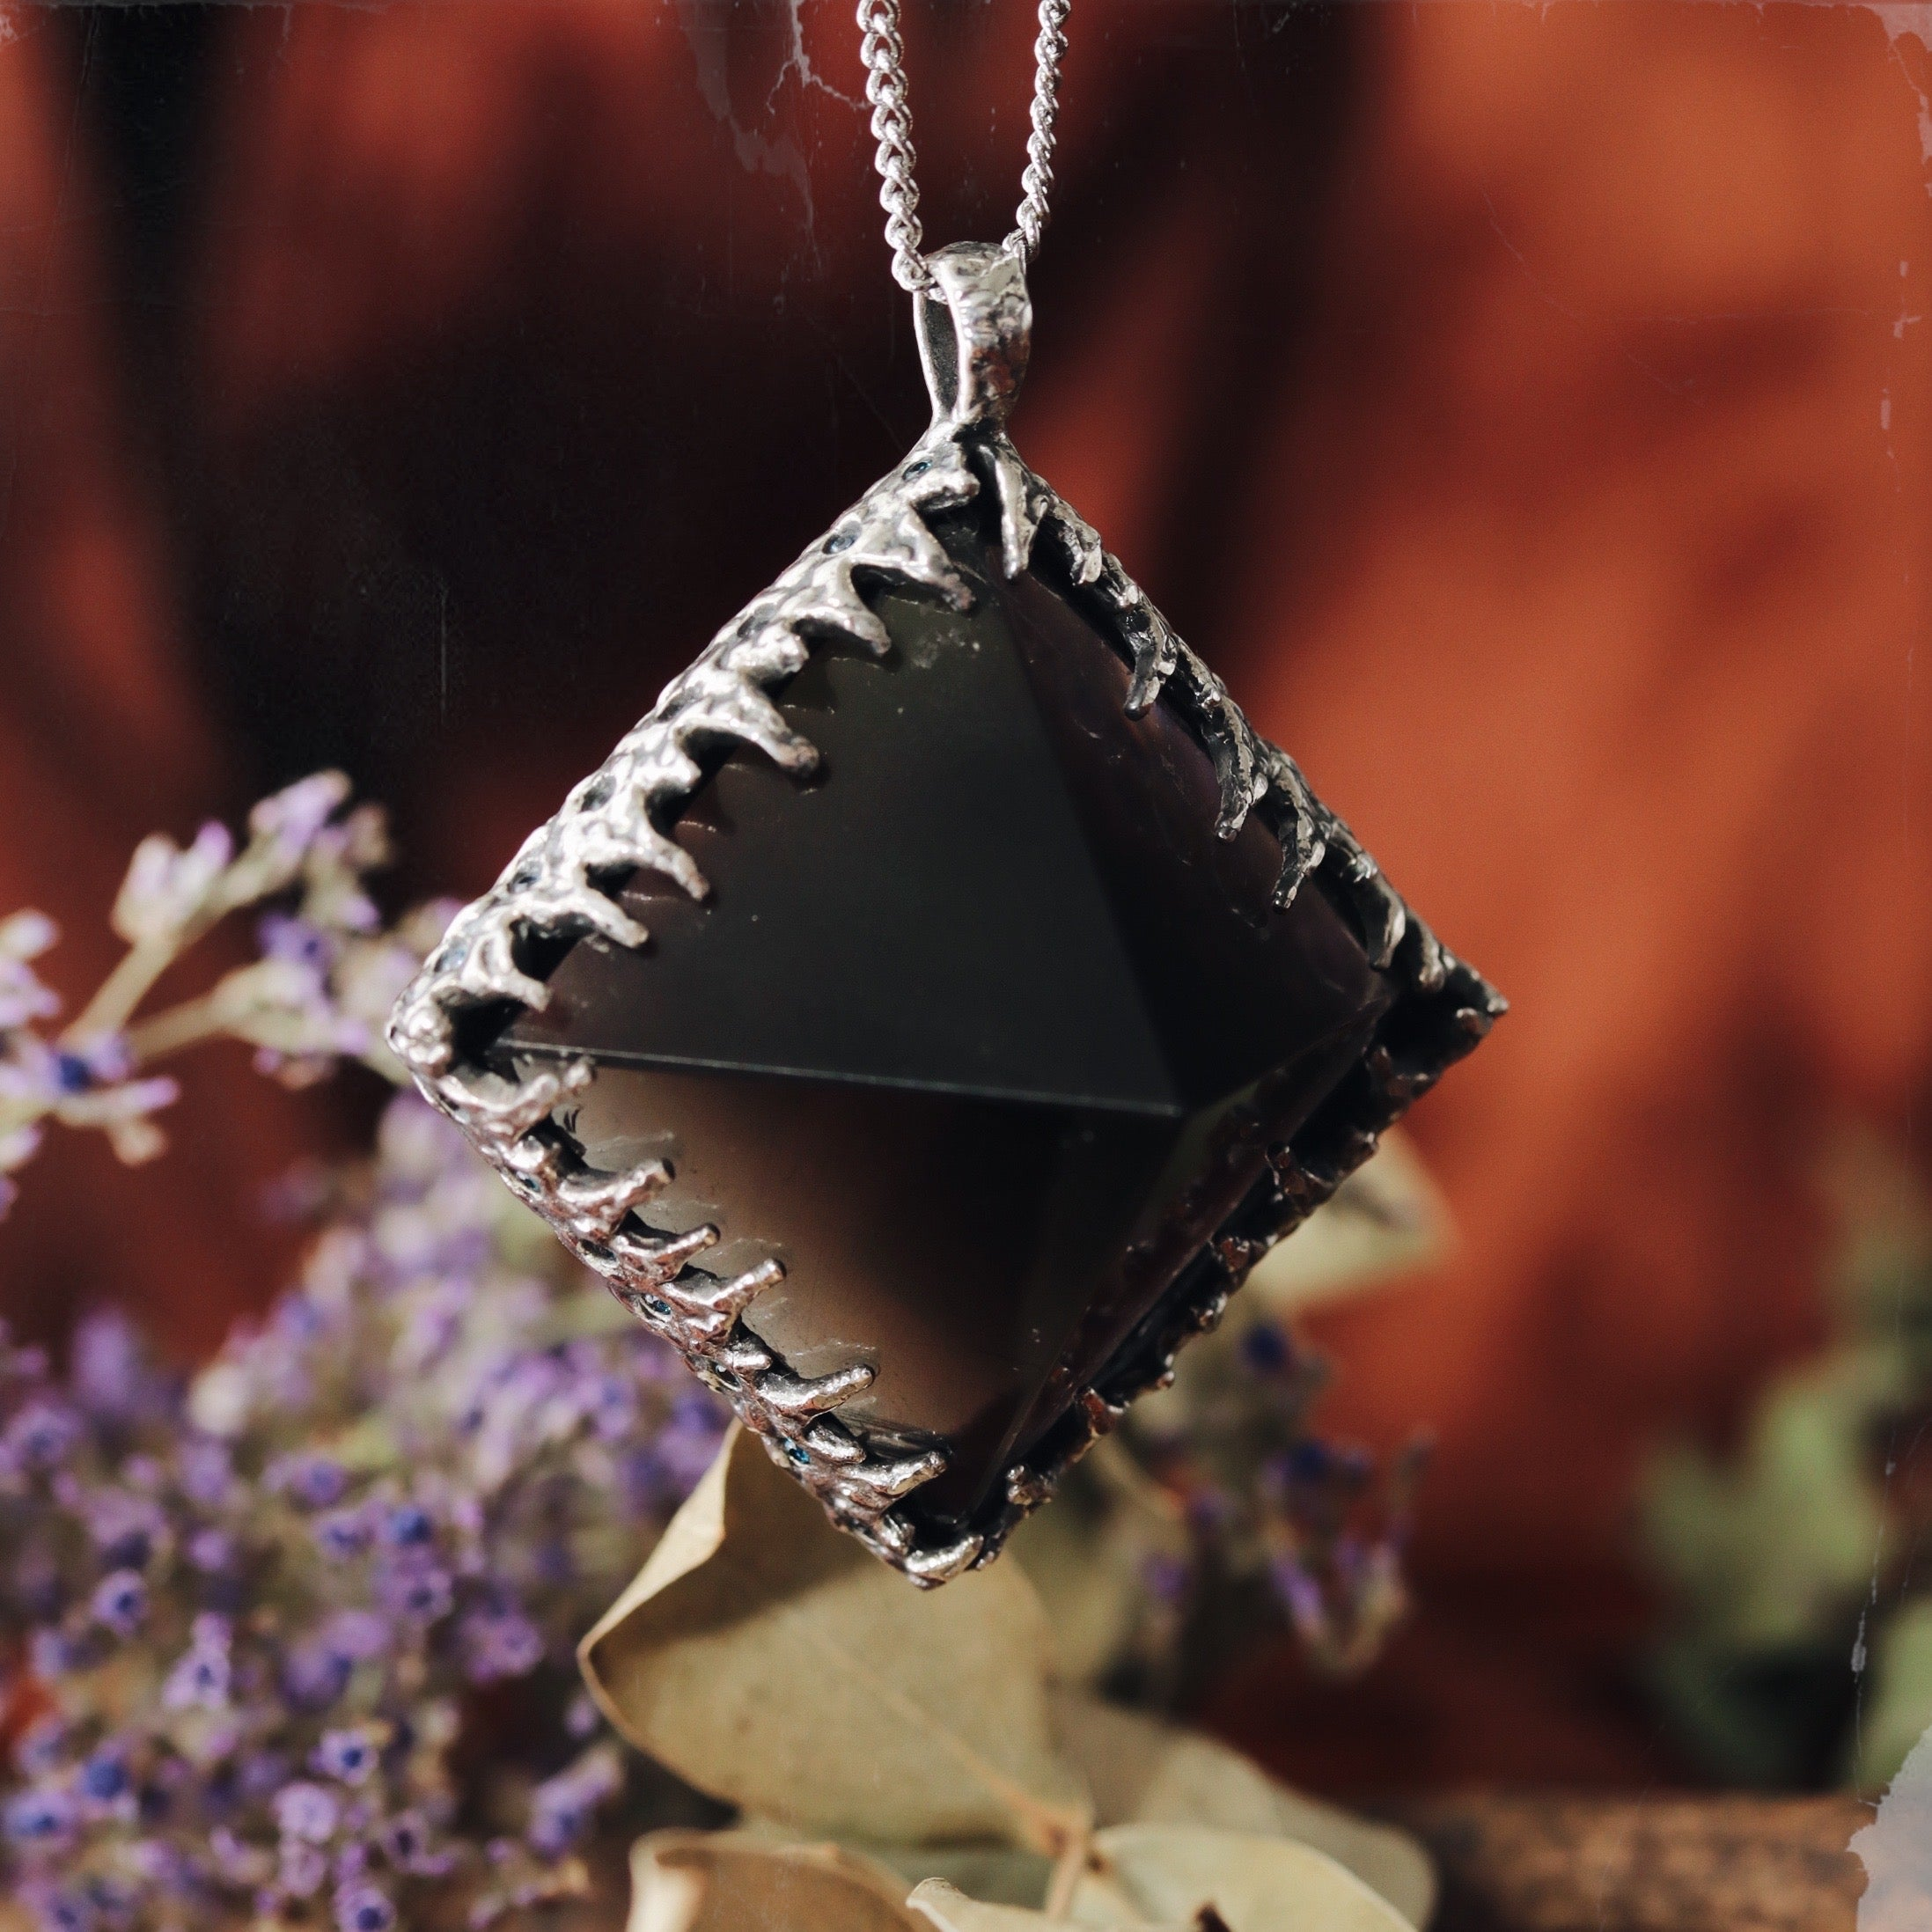 Freyr Smoky Quartz Icicle Crystal Pyramid Necklace #15